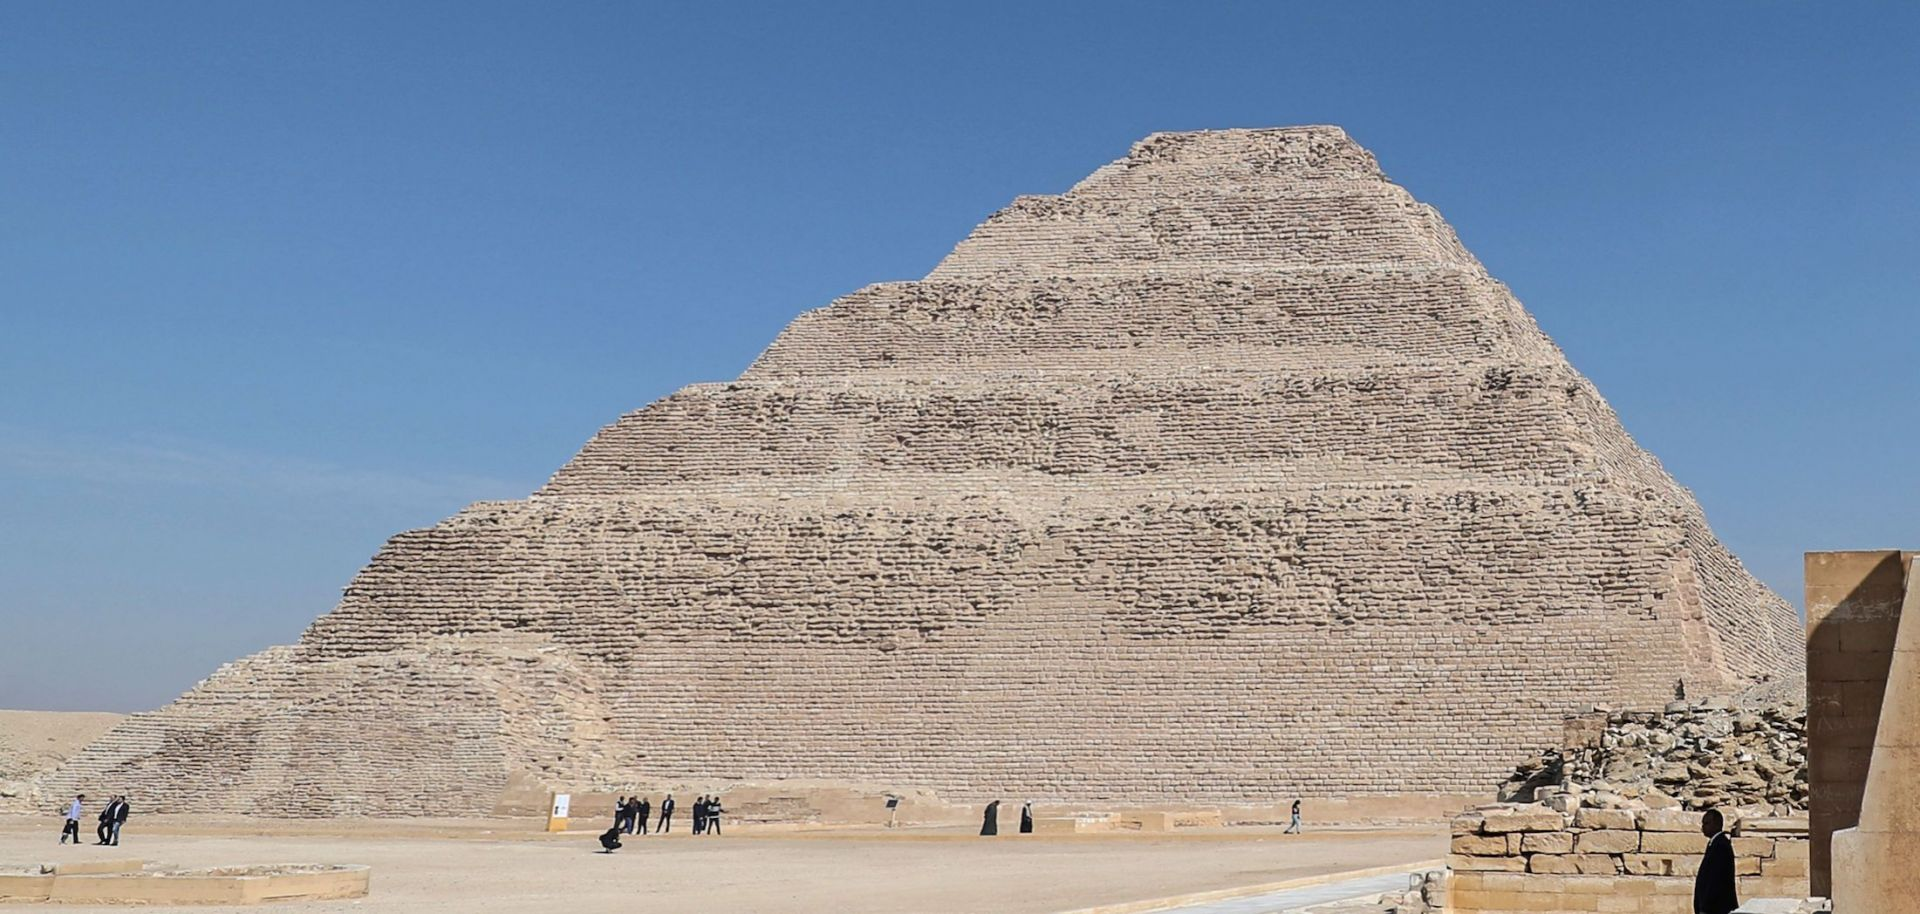 The steps of the pyramid of Djoser are seen in Egypt's Saqqara necropolis, south of the capital Cairo, on March 5, 2020.